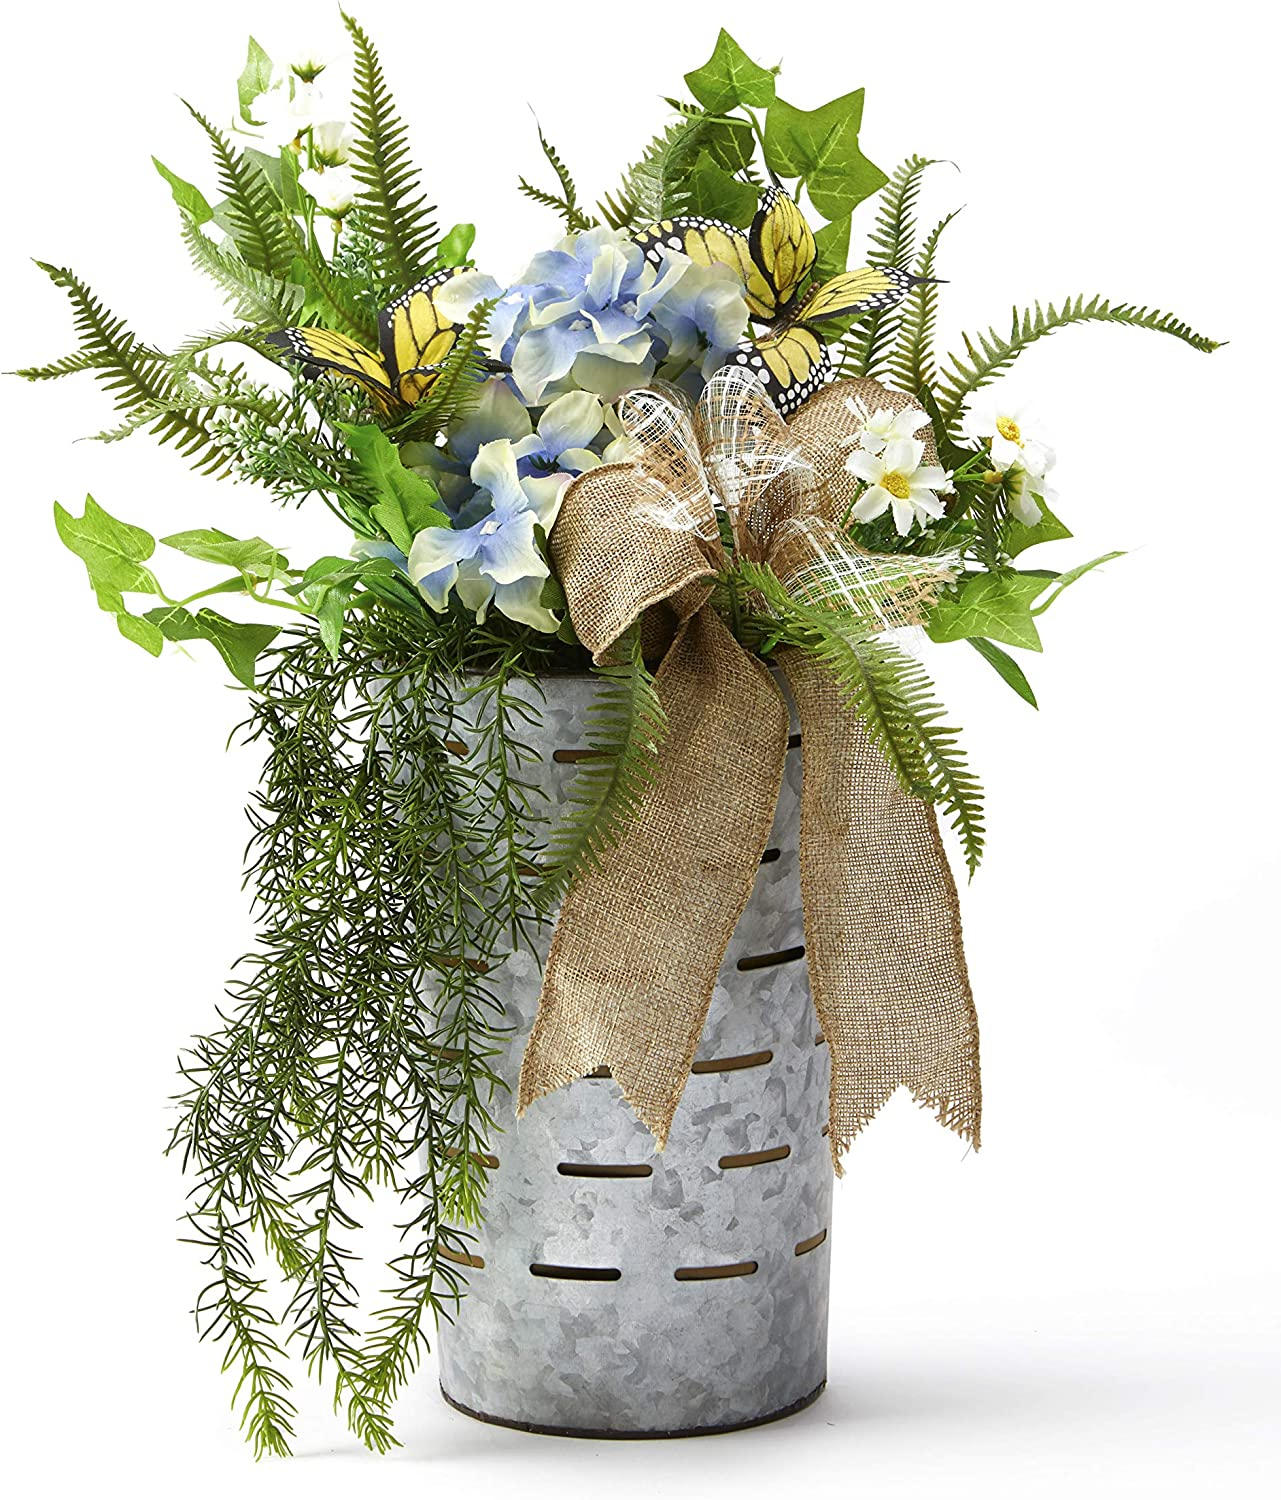 Floral arrangement with blue bird nest blue and green theme with old time wire basket large lettuce leaves floral hydrangea basket